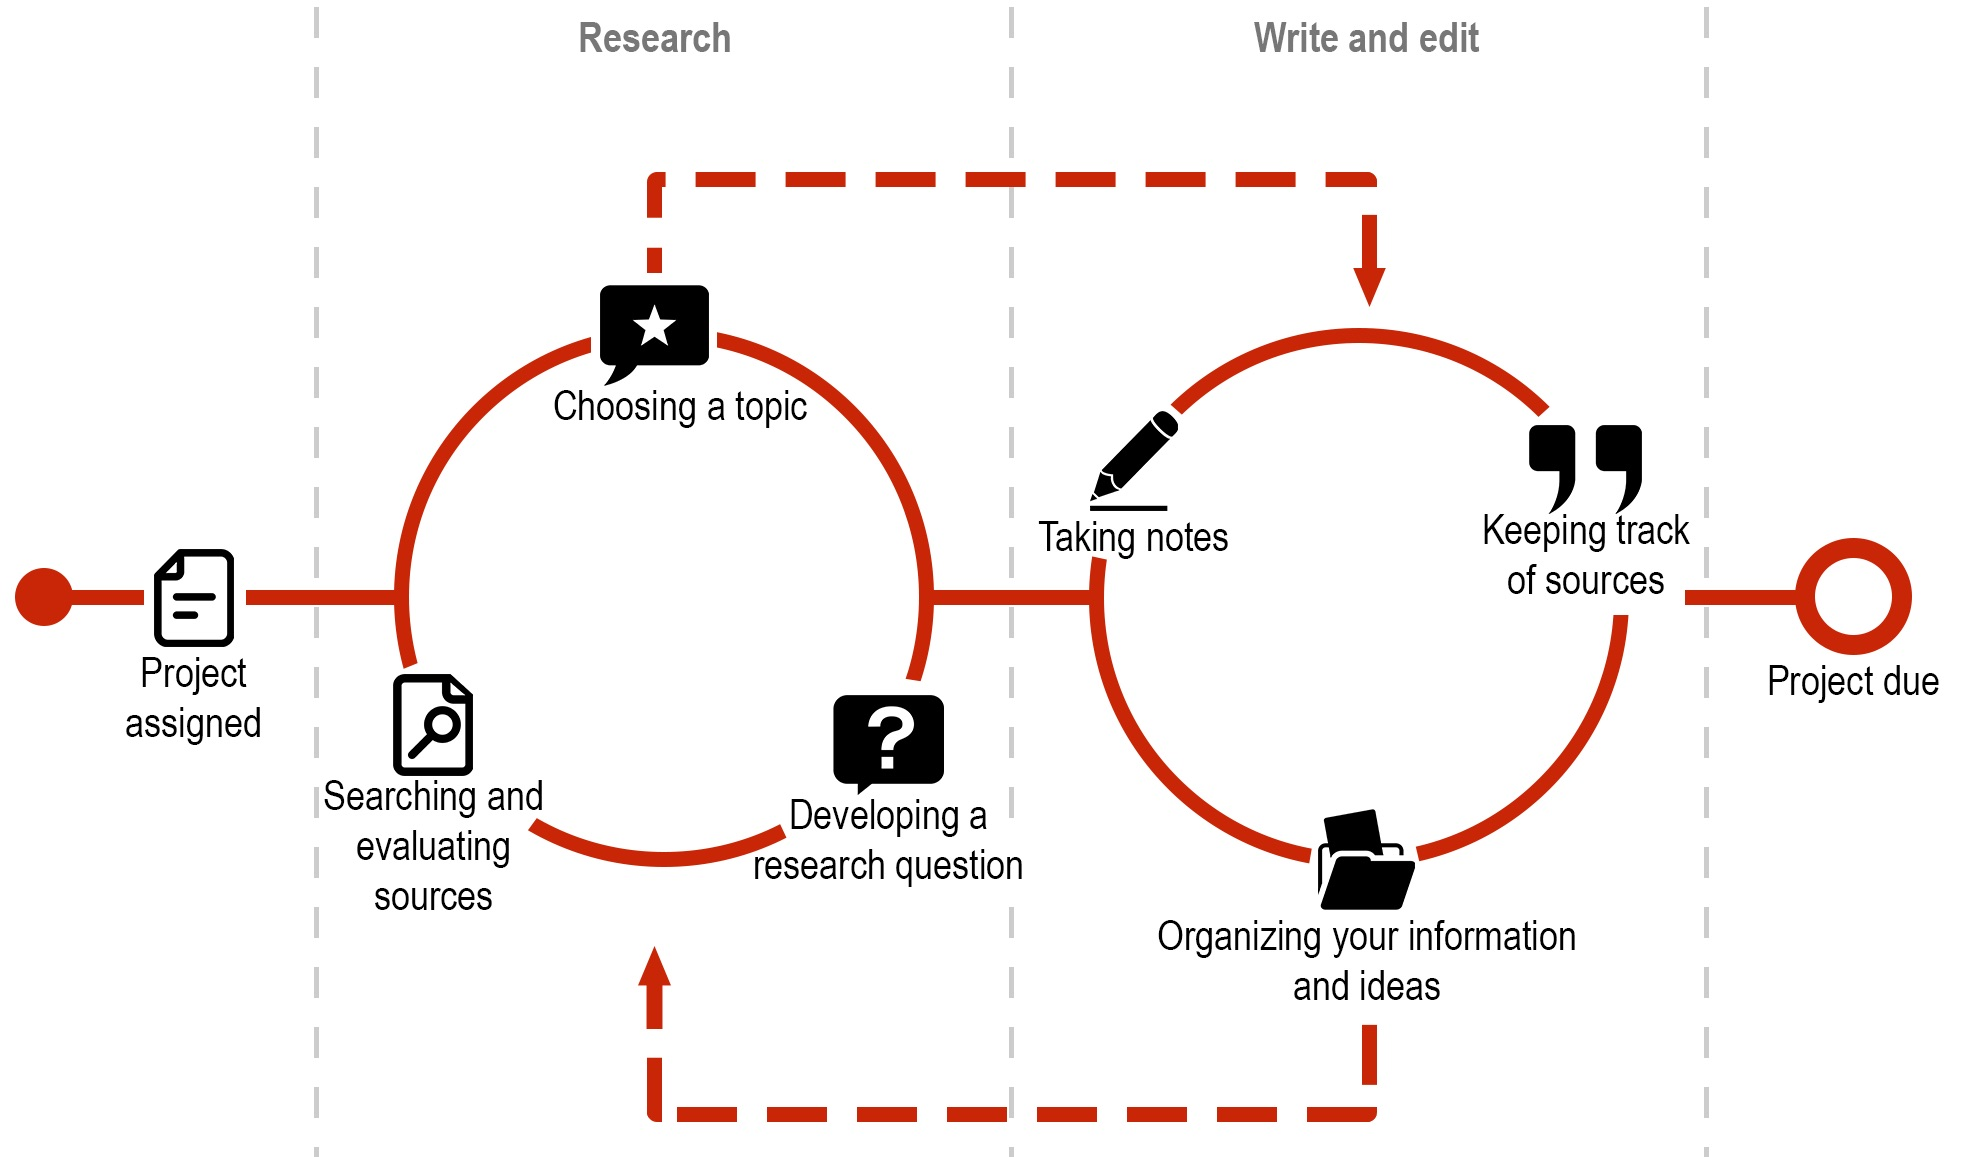 A graph showing the research process as non-linear. The research cycle involves choosing a topic, developing a research question, and searching and evaluating sources. The writing process involves taking notes, keeping track of sources, and organizing your information and ideas. You will move between the writing and research cycles through the process of finishing a project.